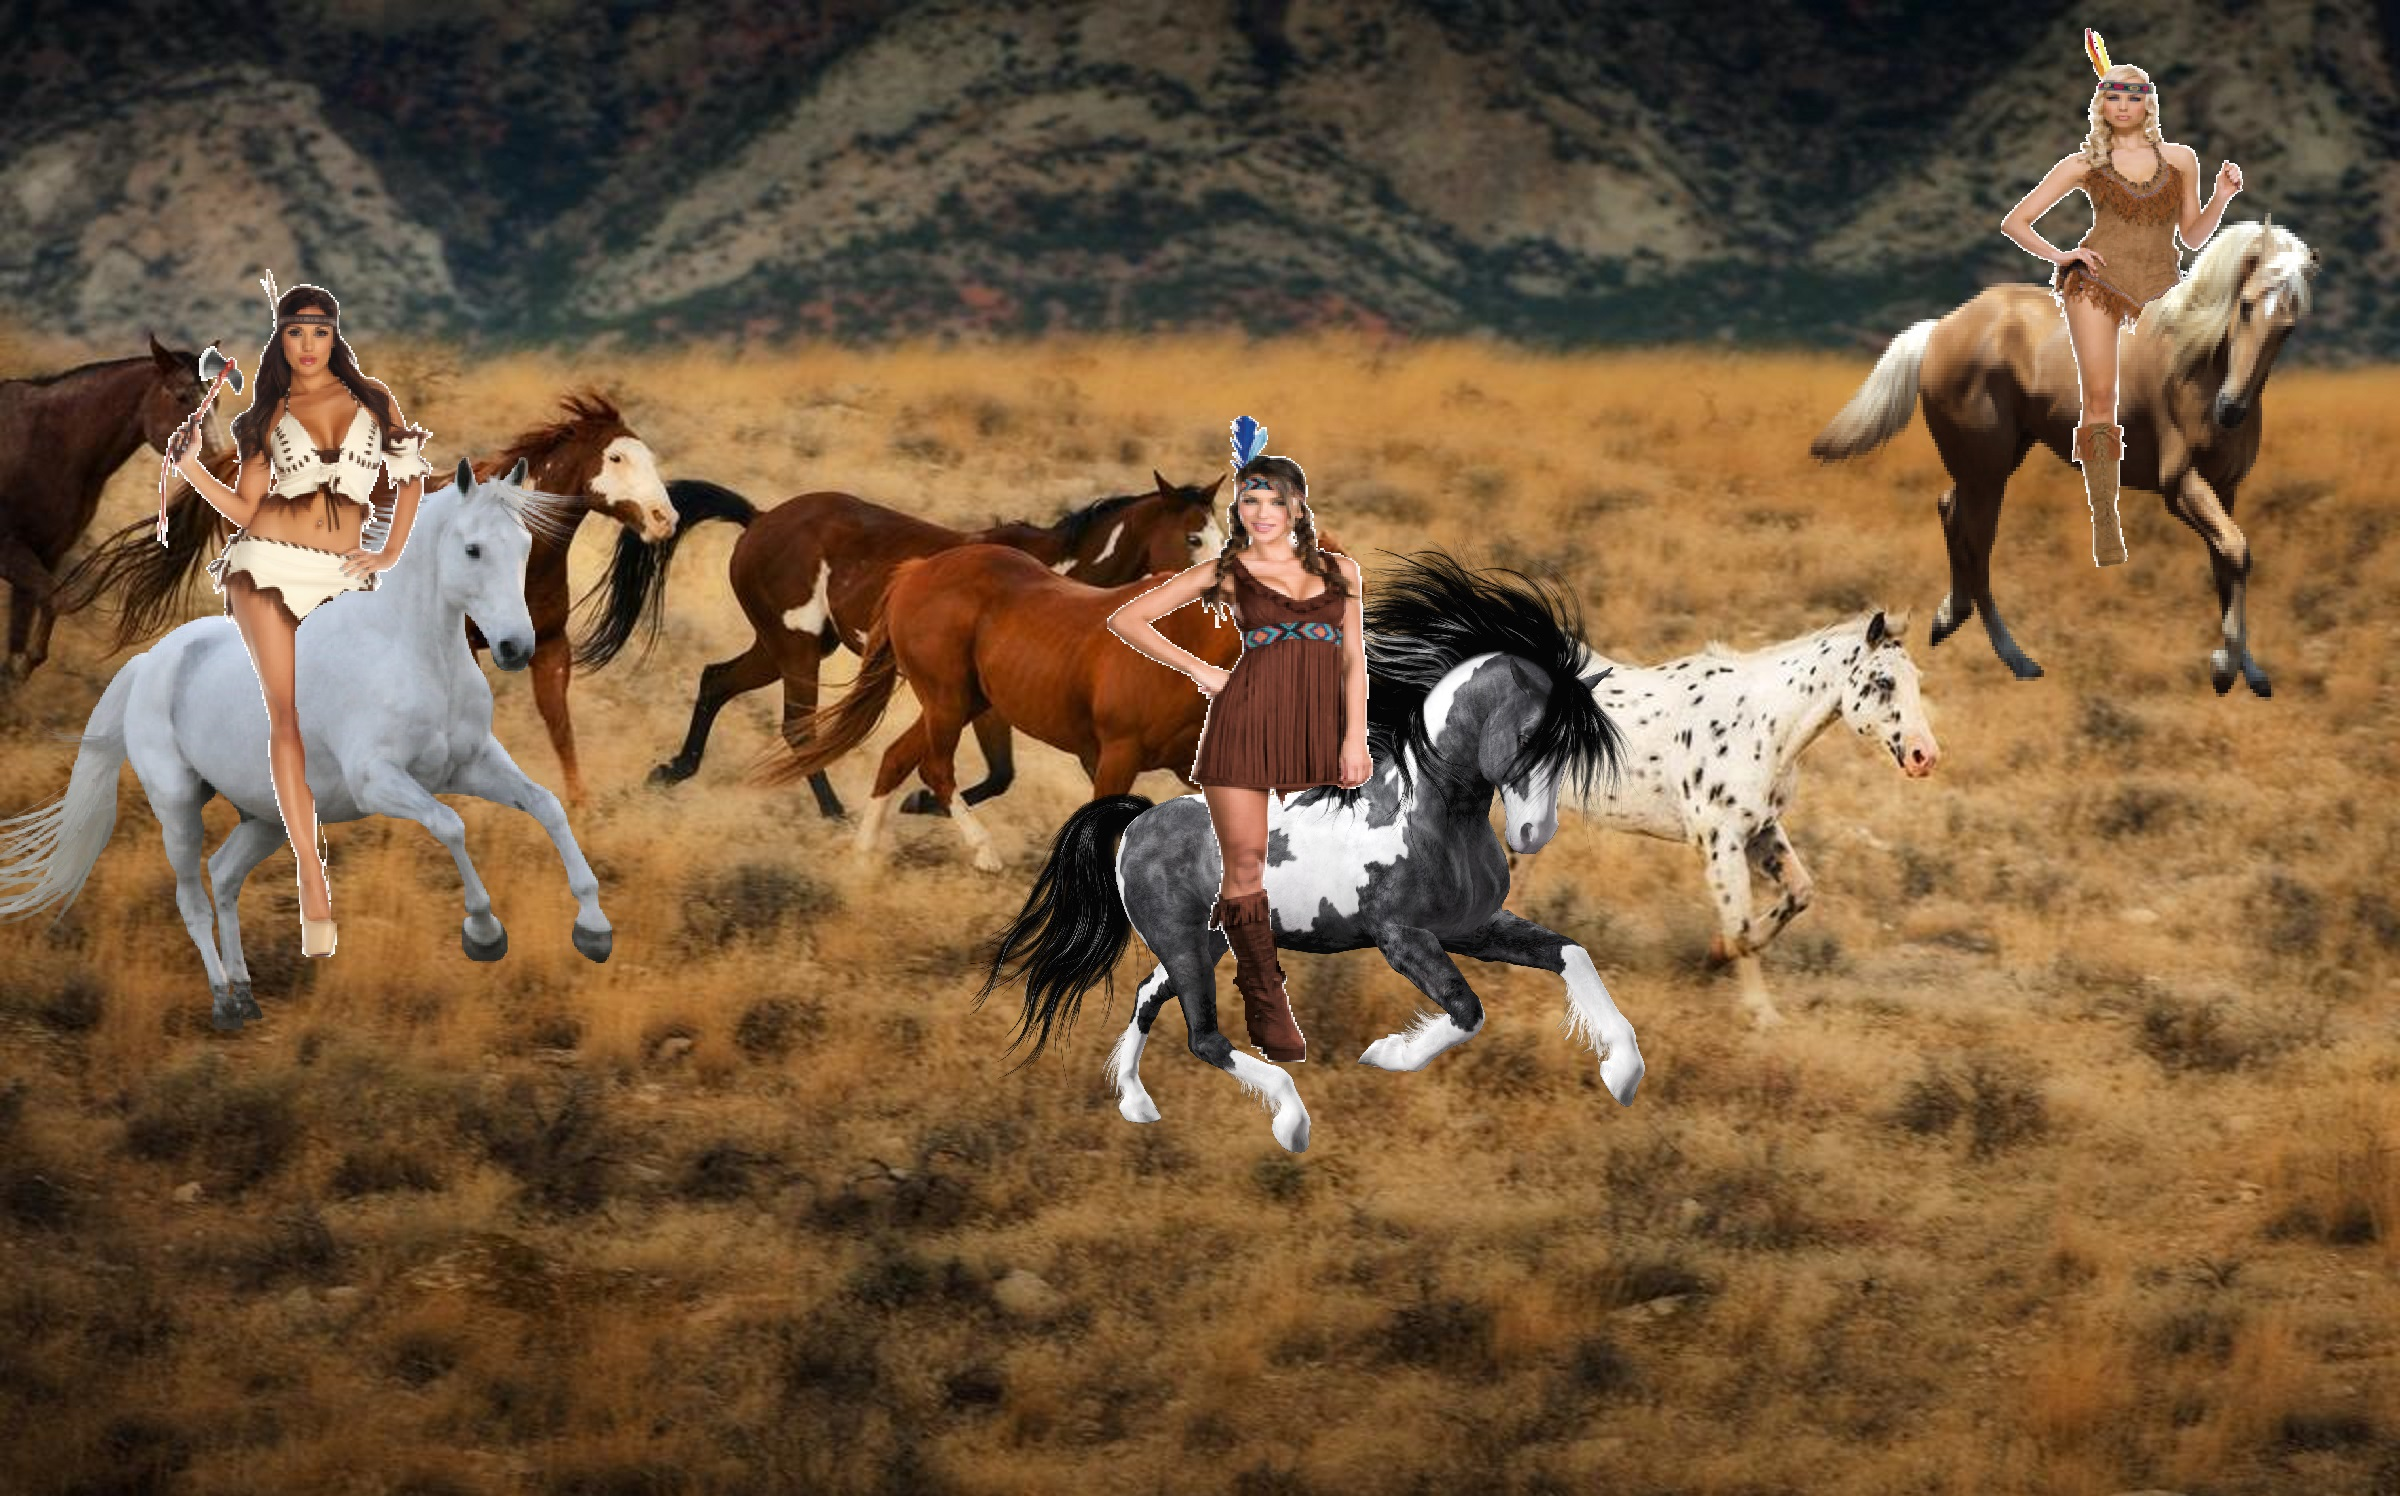 3 Hot ब र व Native American Women Riding Their Beautiful घ ड To Roundup And Tame A Herd Of Wild H Native Americans प रश सक Art 38774504 फ न प प